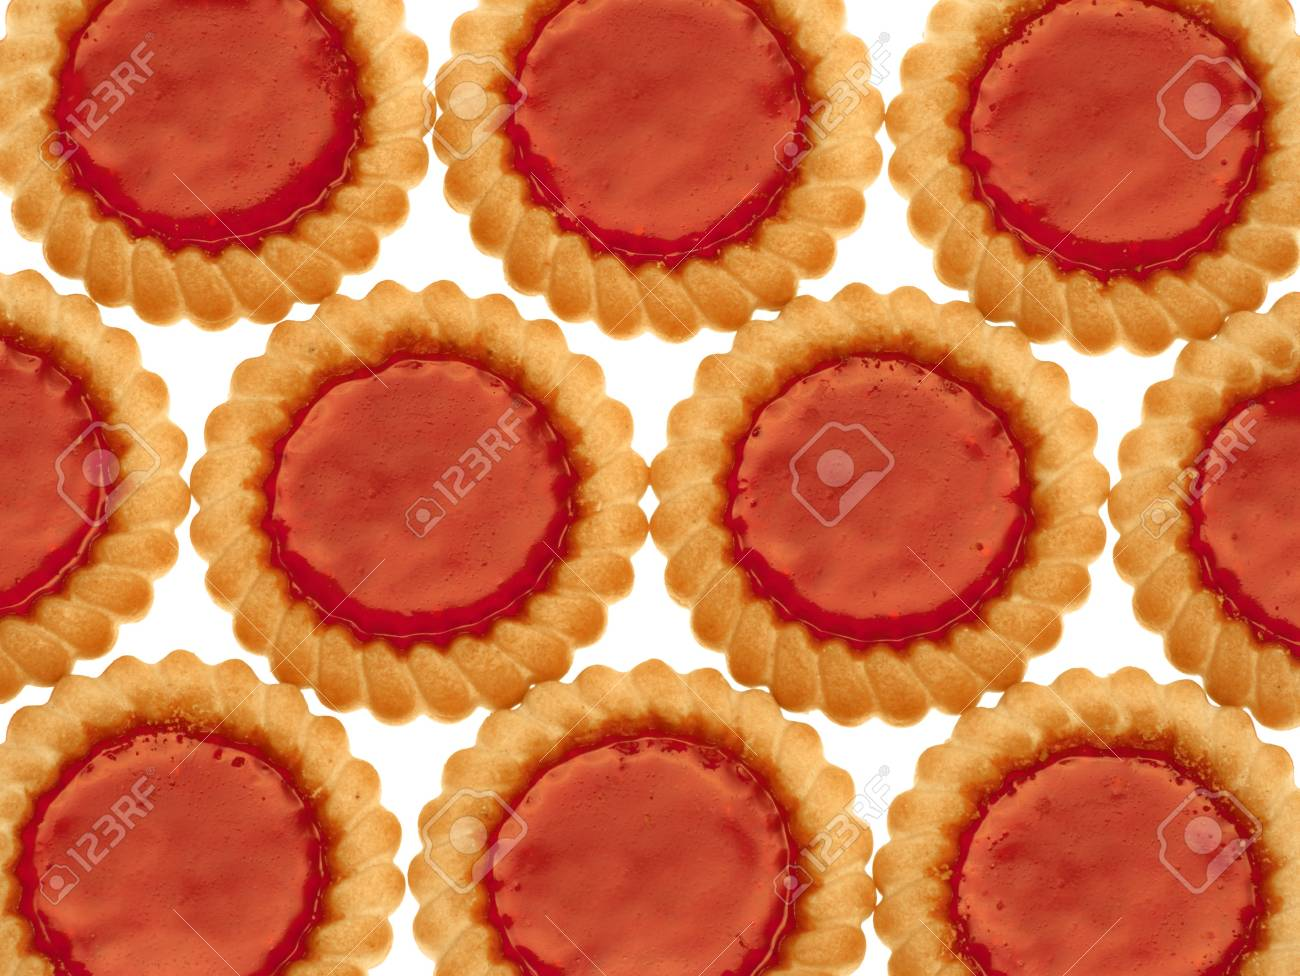 Crispy cookies with marmalade on a white background Stock Photo - 5080662